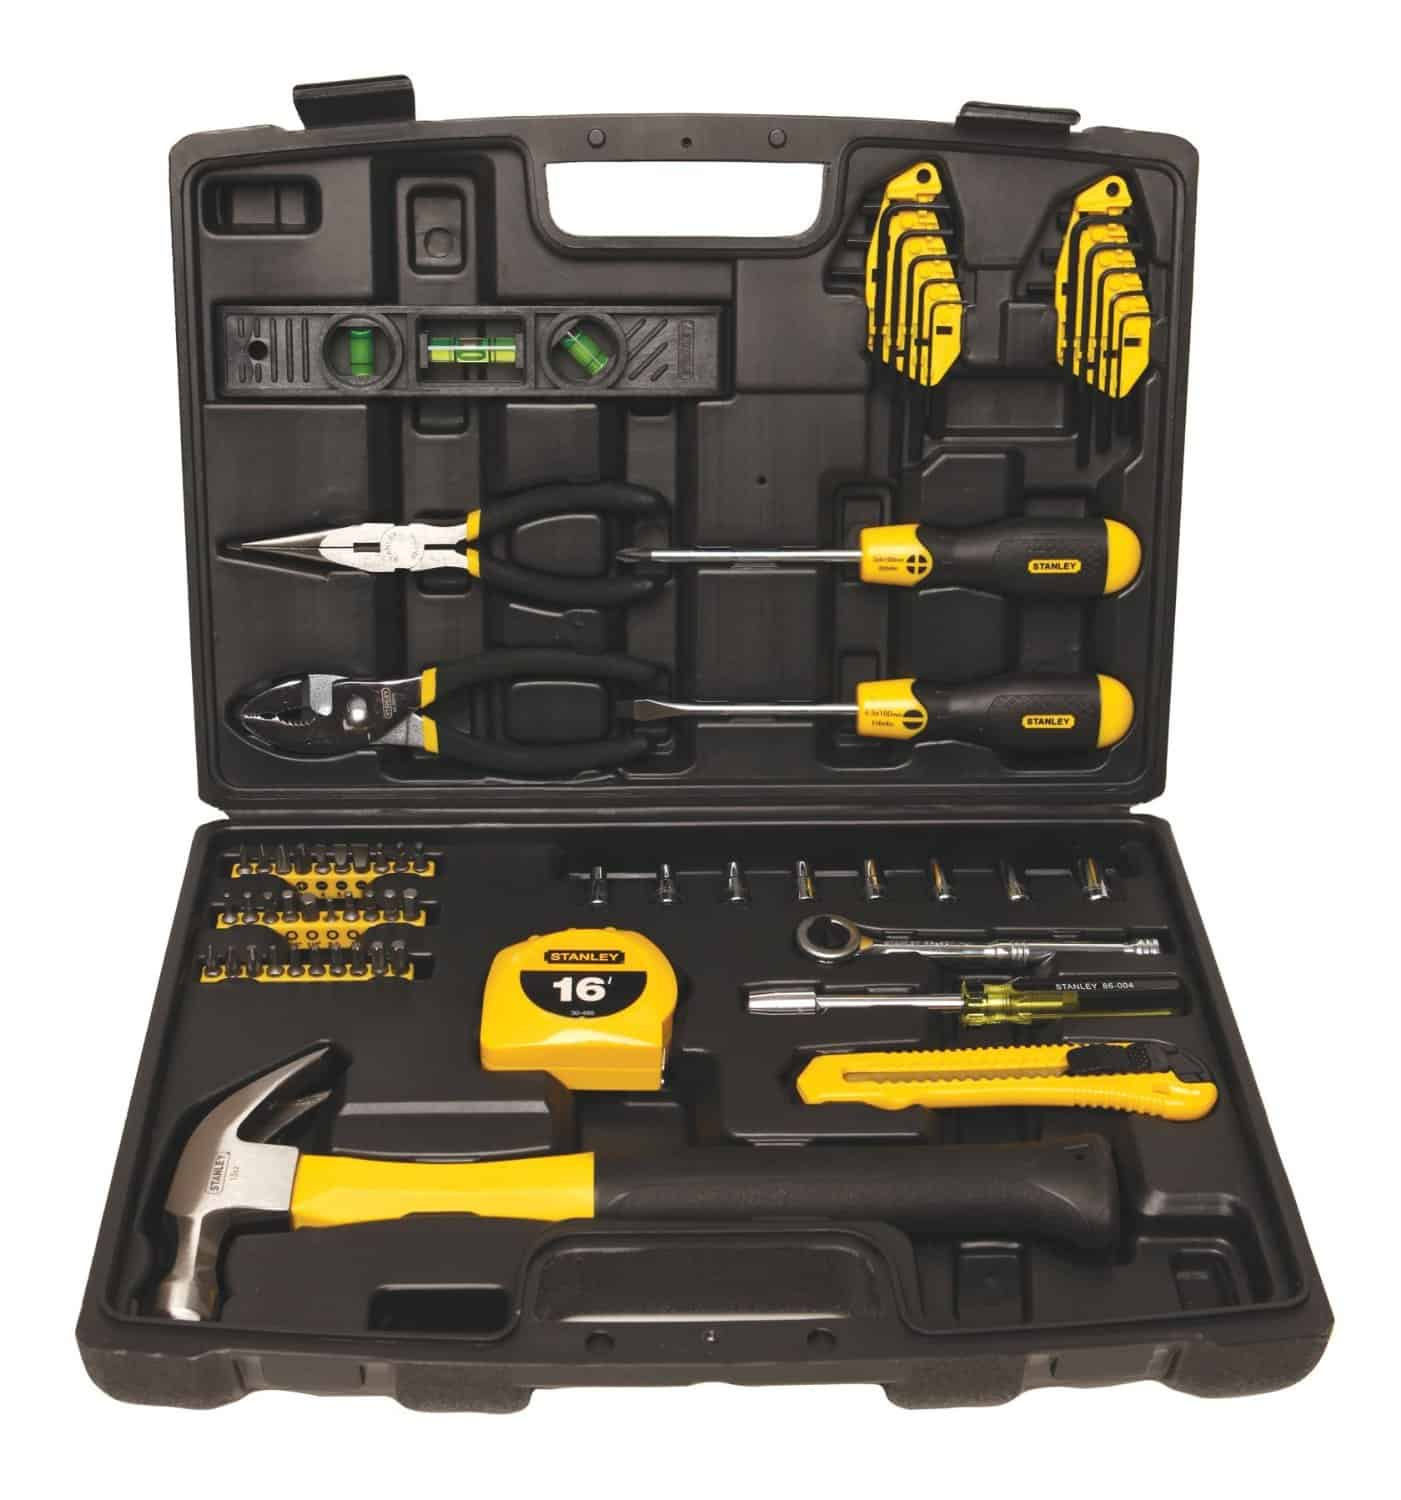 Stanley 65-Piece Homeowner's Tool Kit Review